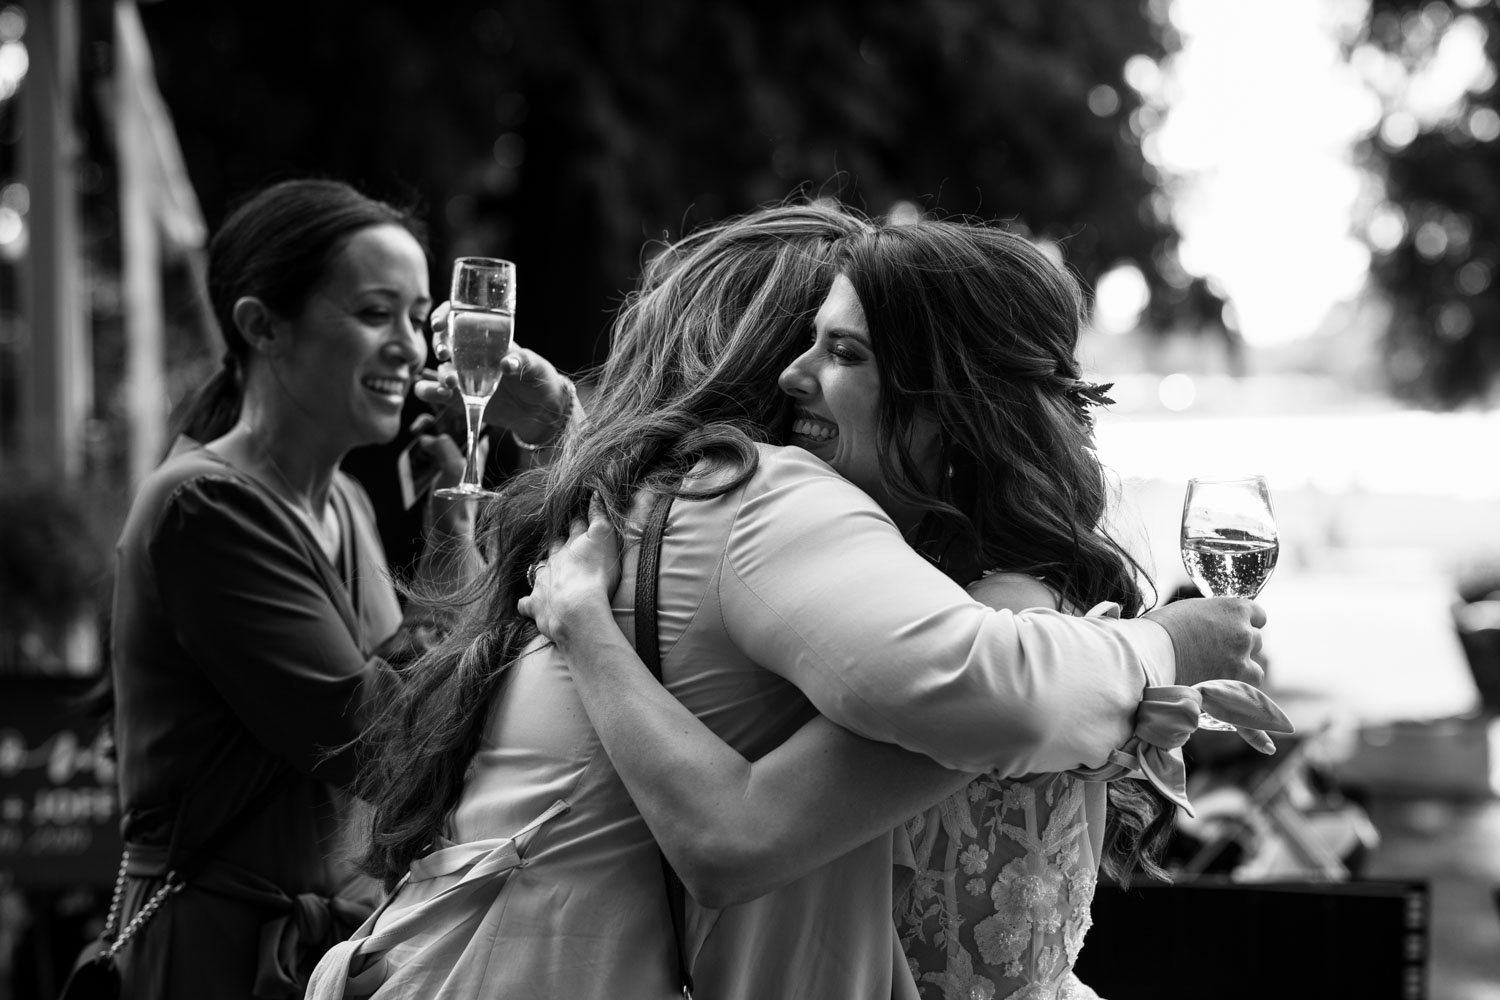 Bride greets her friends during cocktail hour at Brock House Restaurant Wedding Venue on Jericho Beach